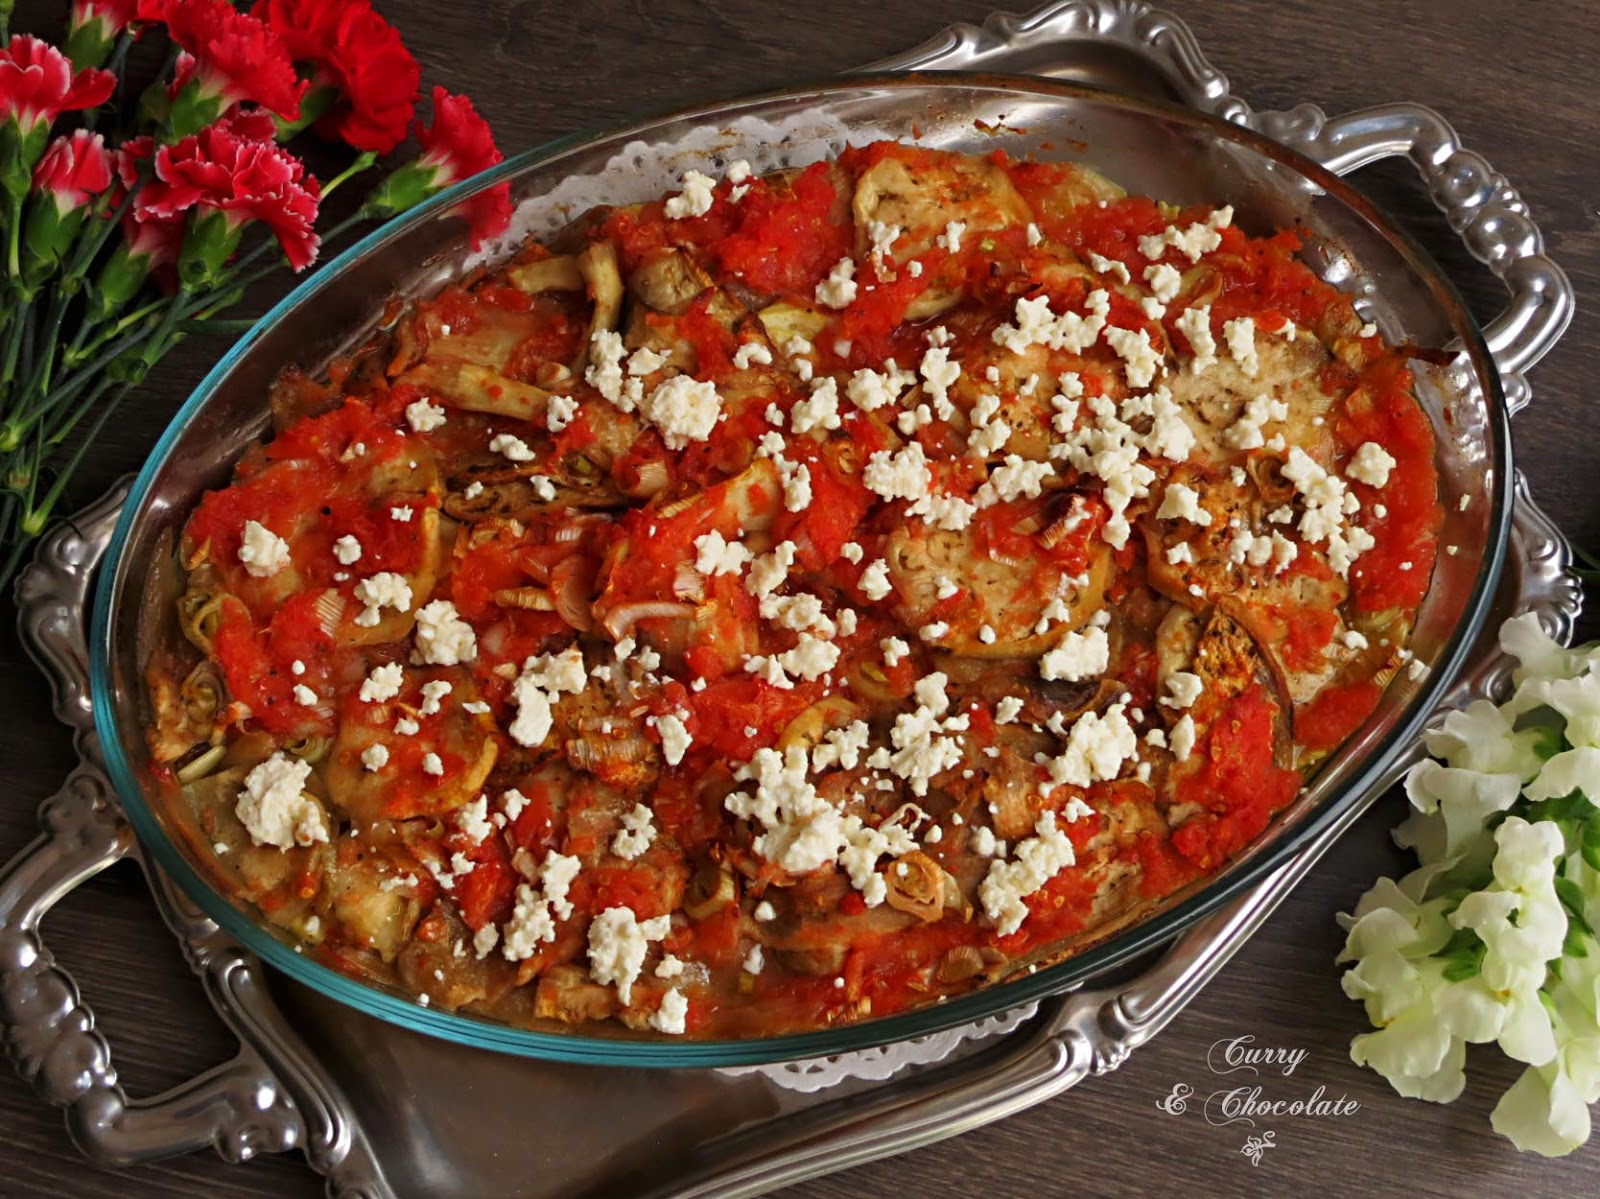 Briam griego o verduras asadas – Greek Briam (oven baked vegetables)